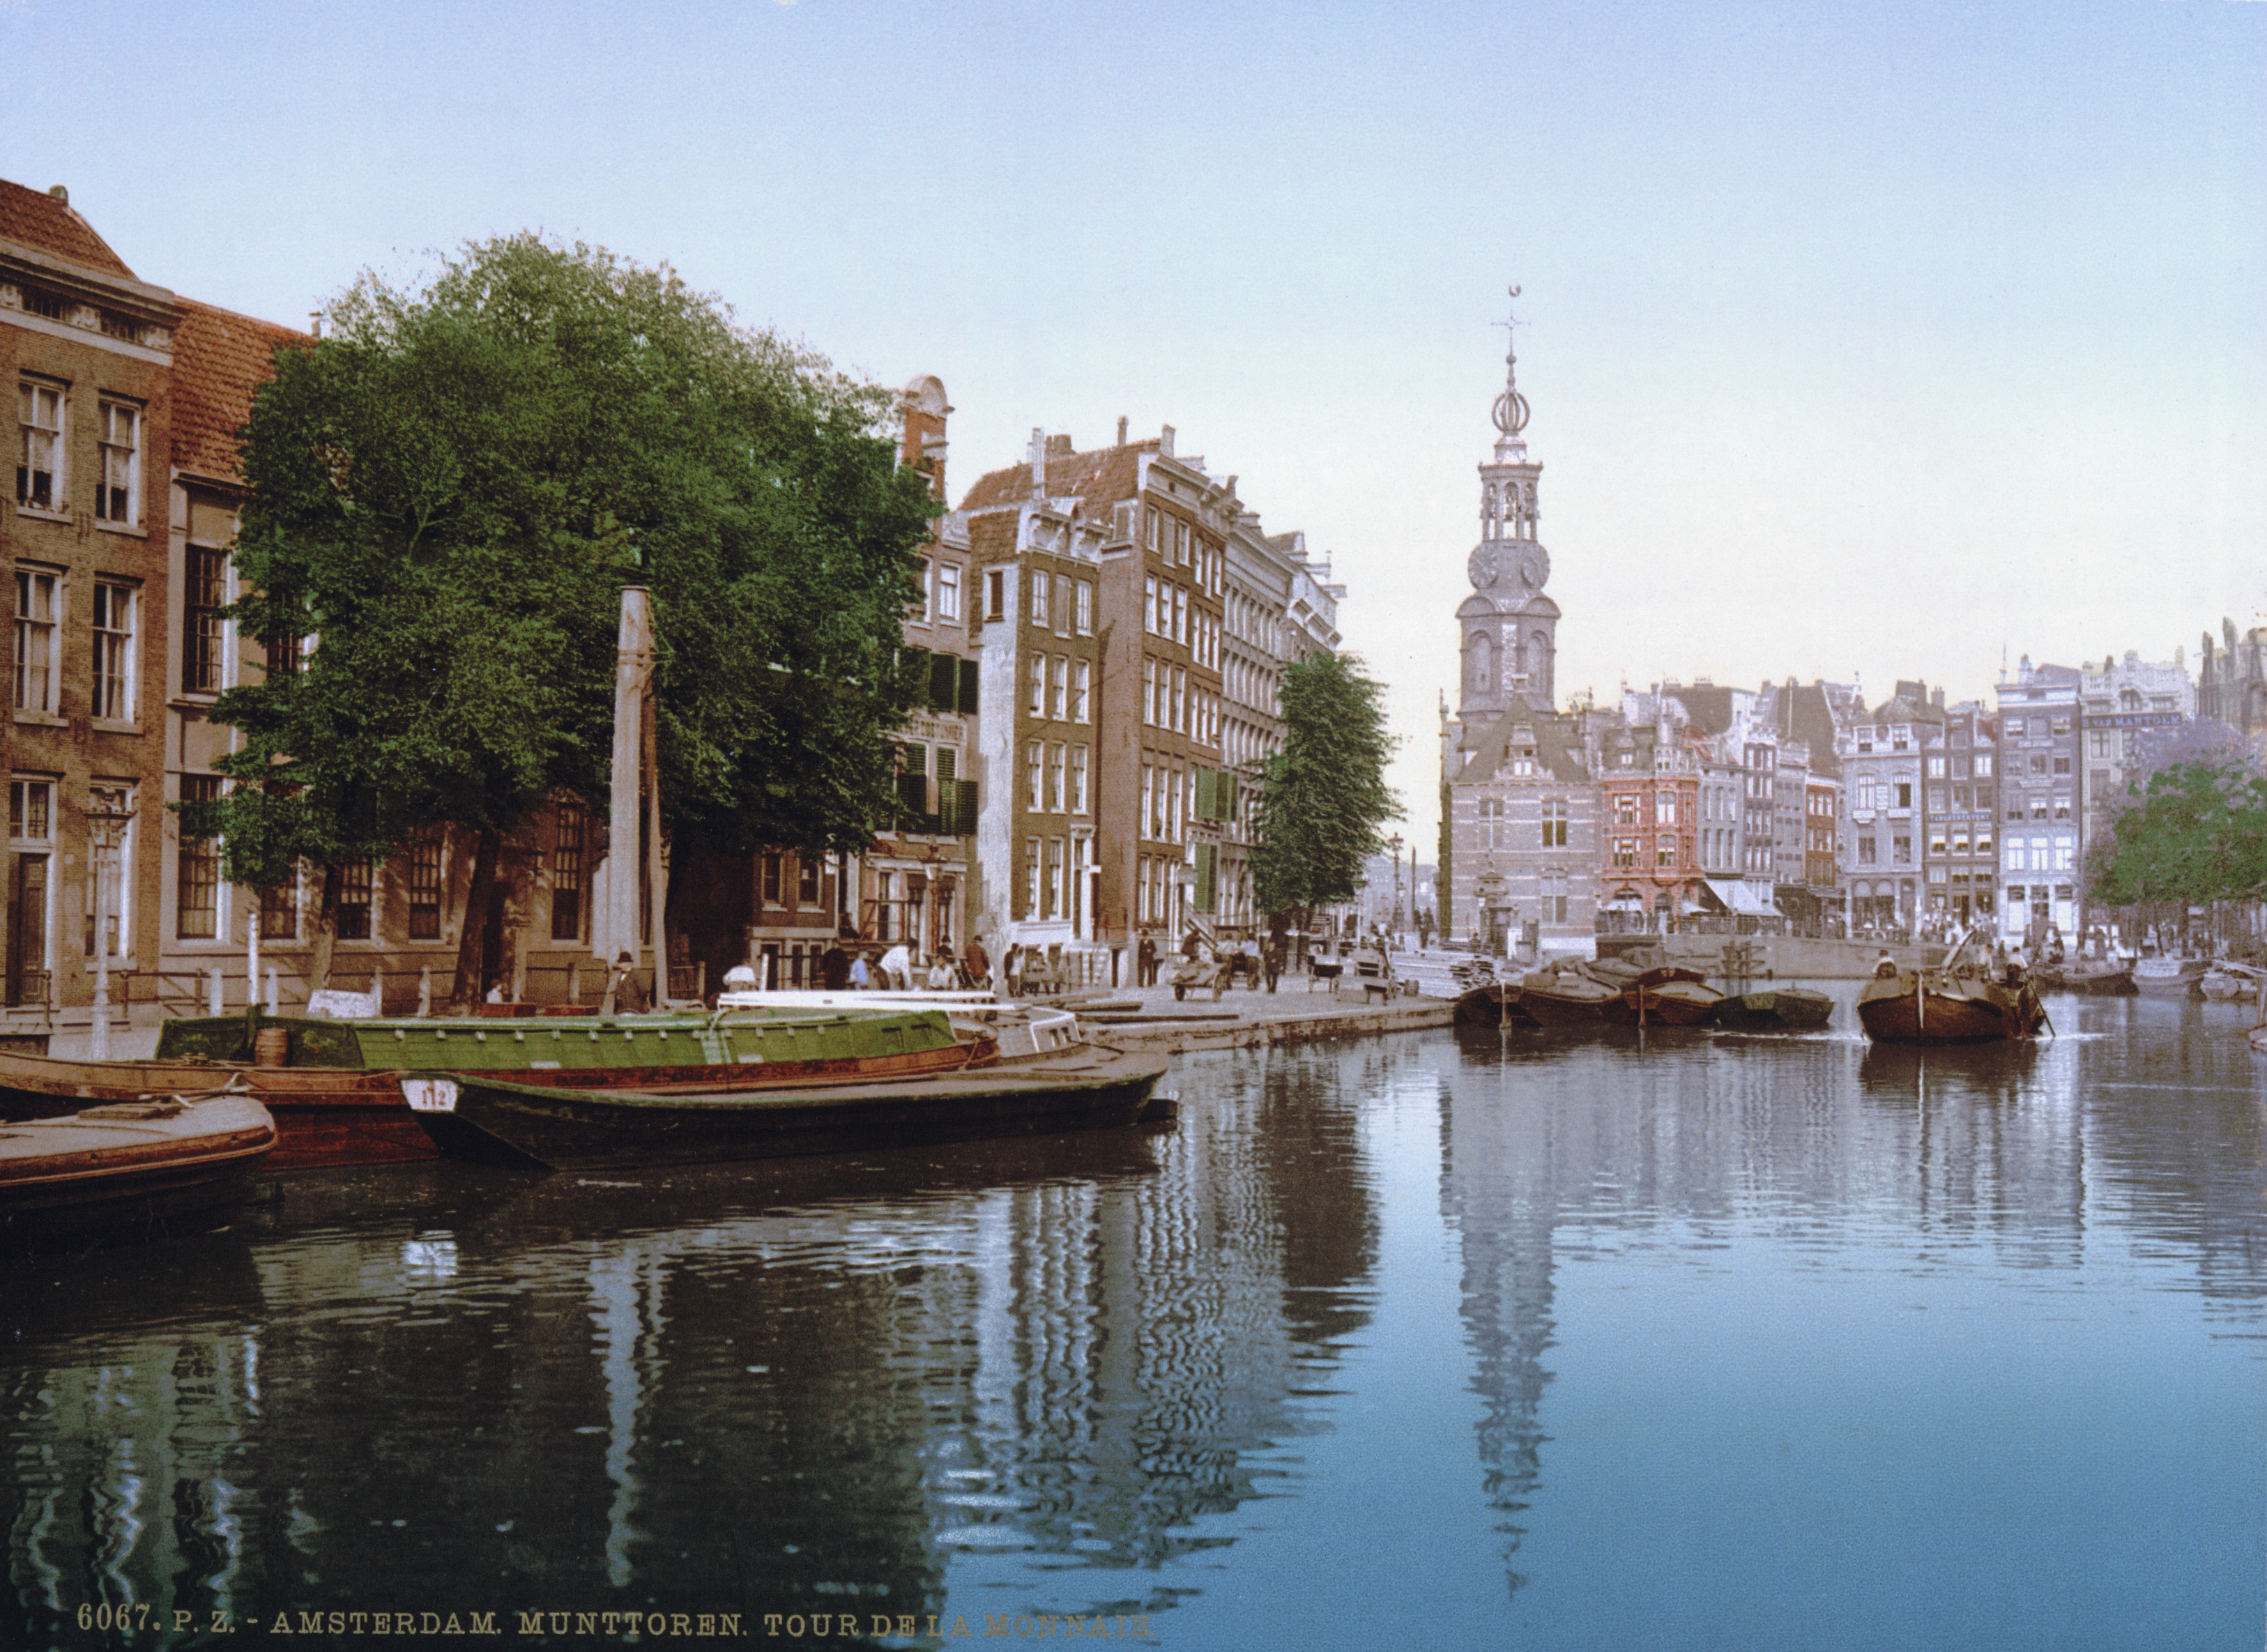 Amsterdam Netherlands  city photo : Original file ‎ 3,252 × 2,370 pixels, file size: 6.87 MB, MIME ...